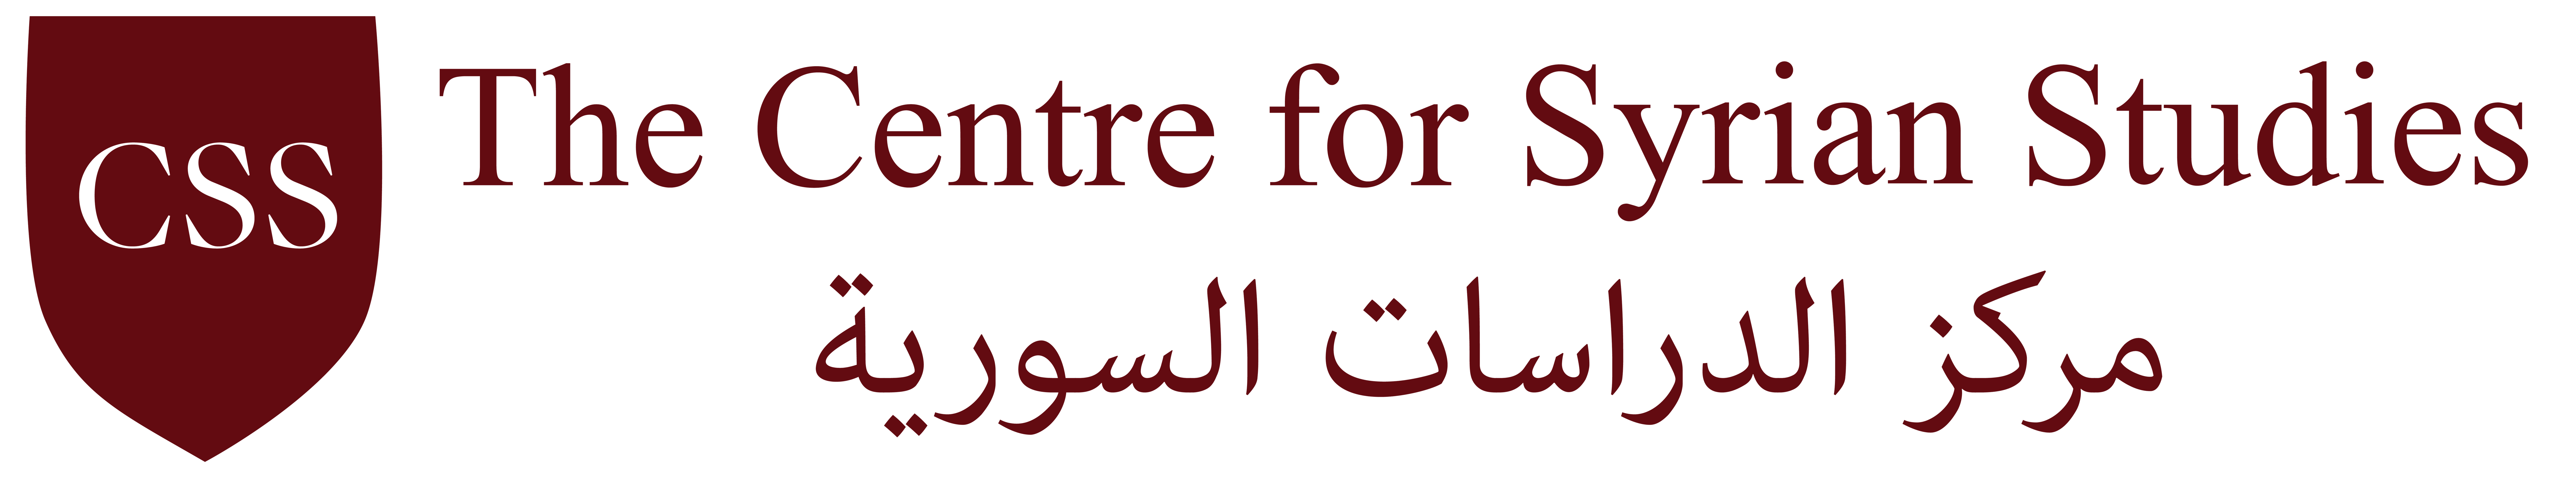 The Centre for Syrian Studies